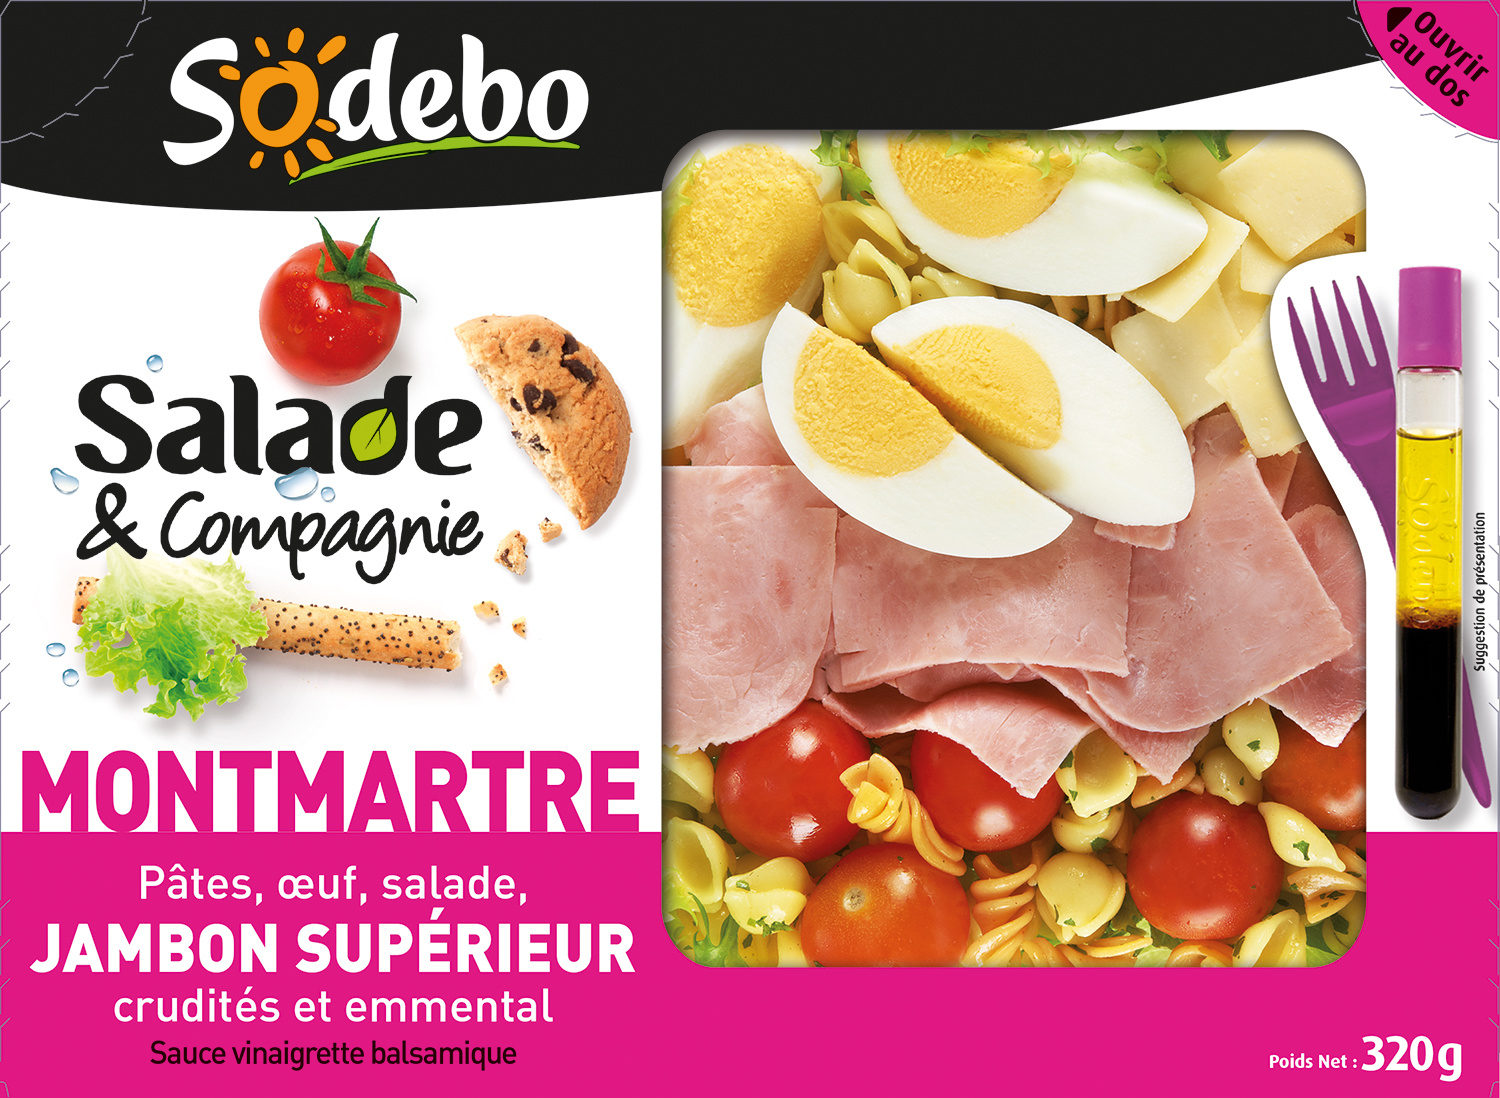 Salade & Compagnie - Montmartre - Product